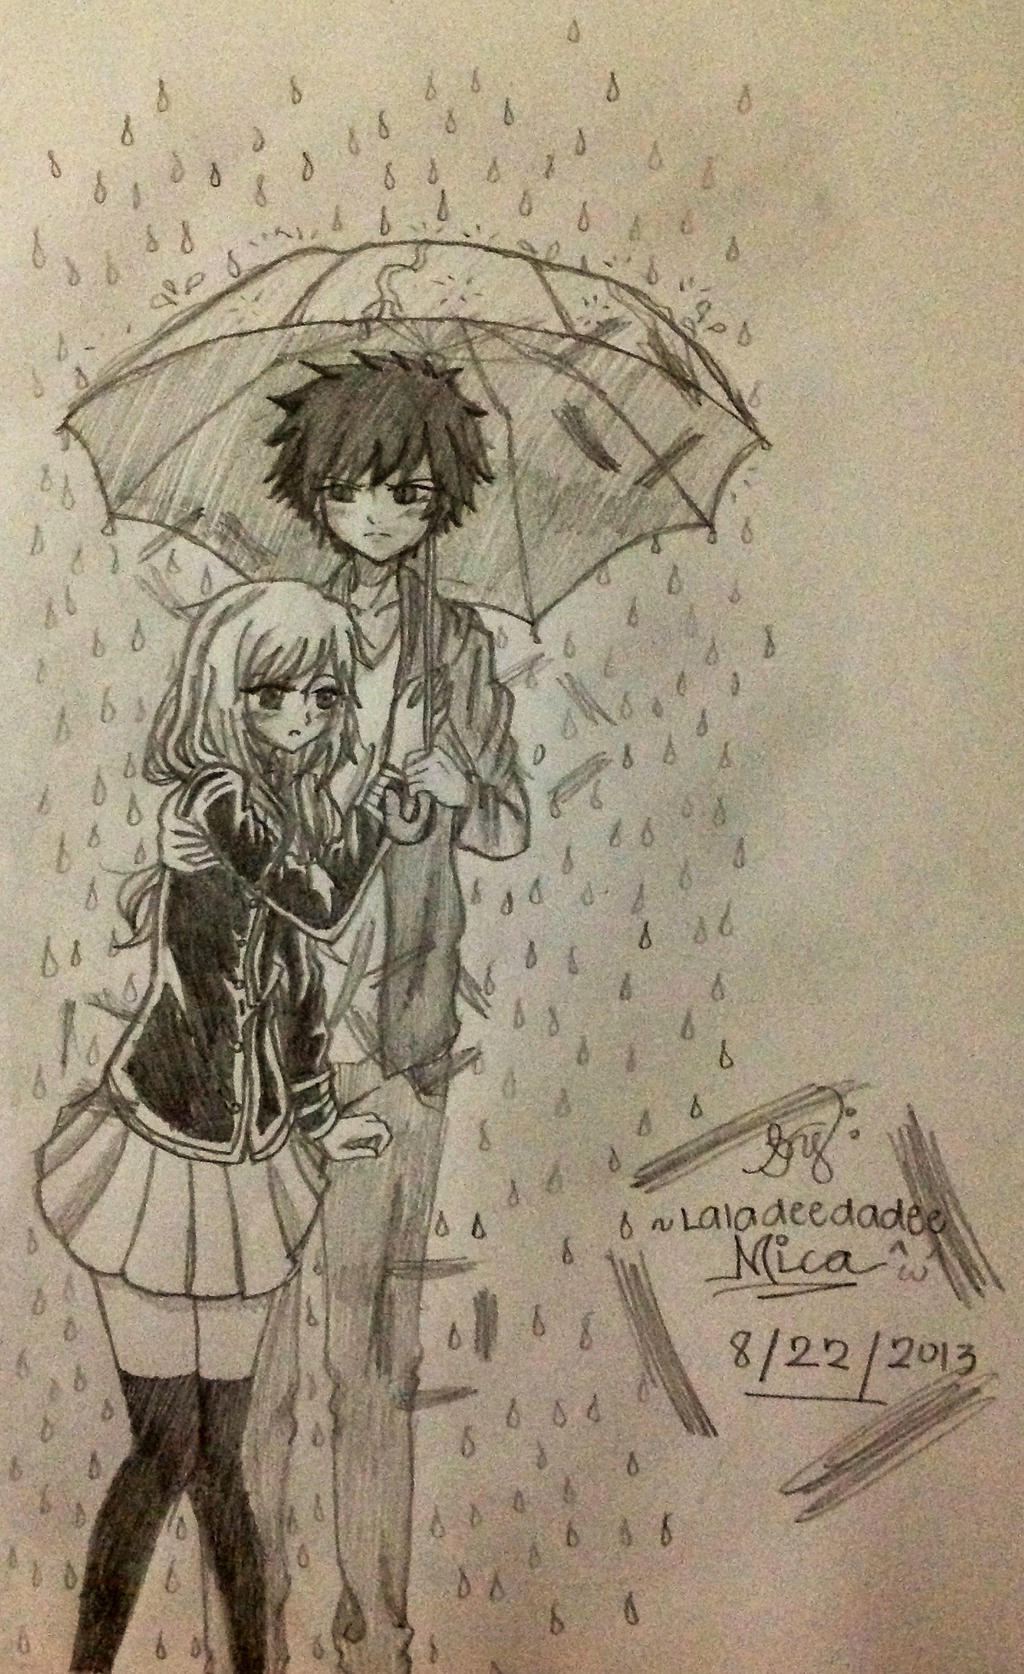 Slight Hug (Under the Rain) by Laladeedadee on DeviantArt